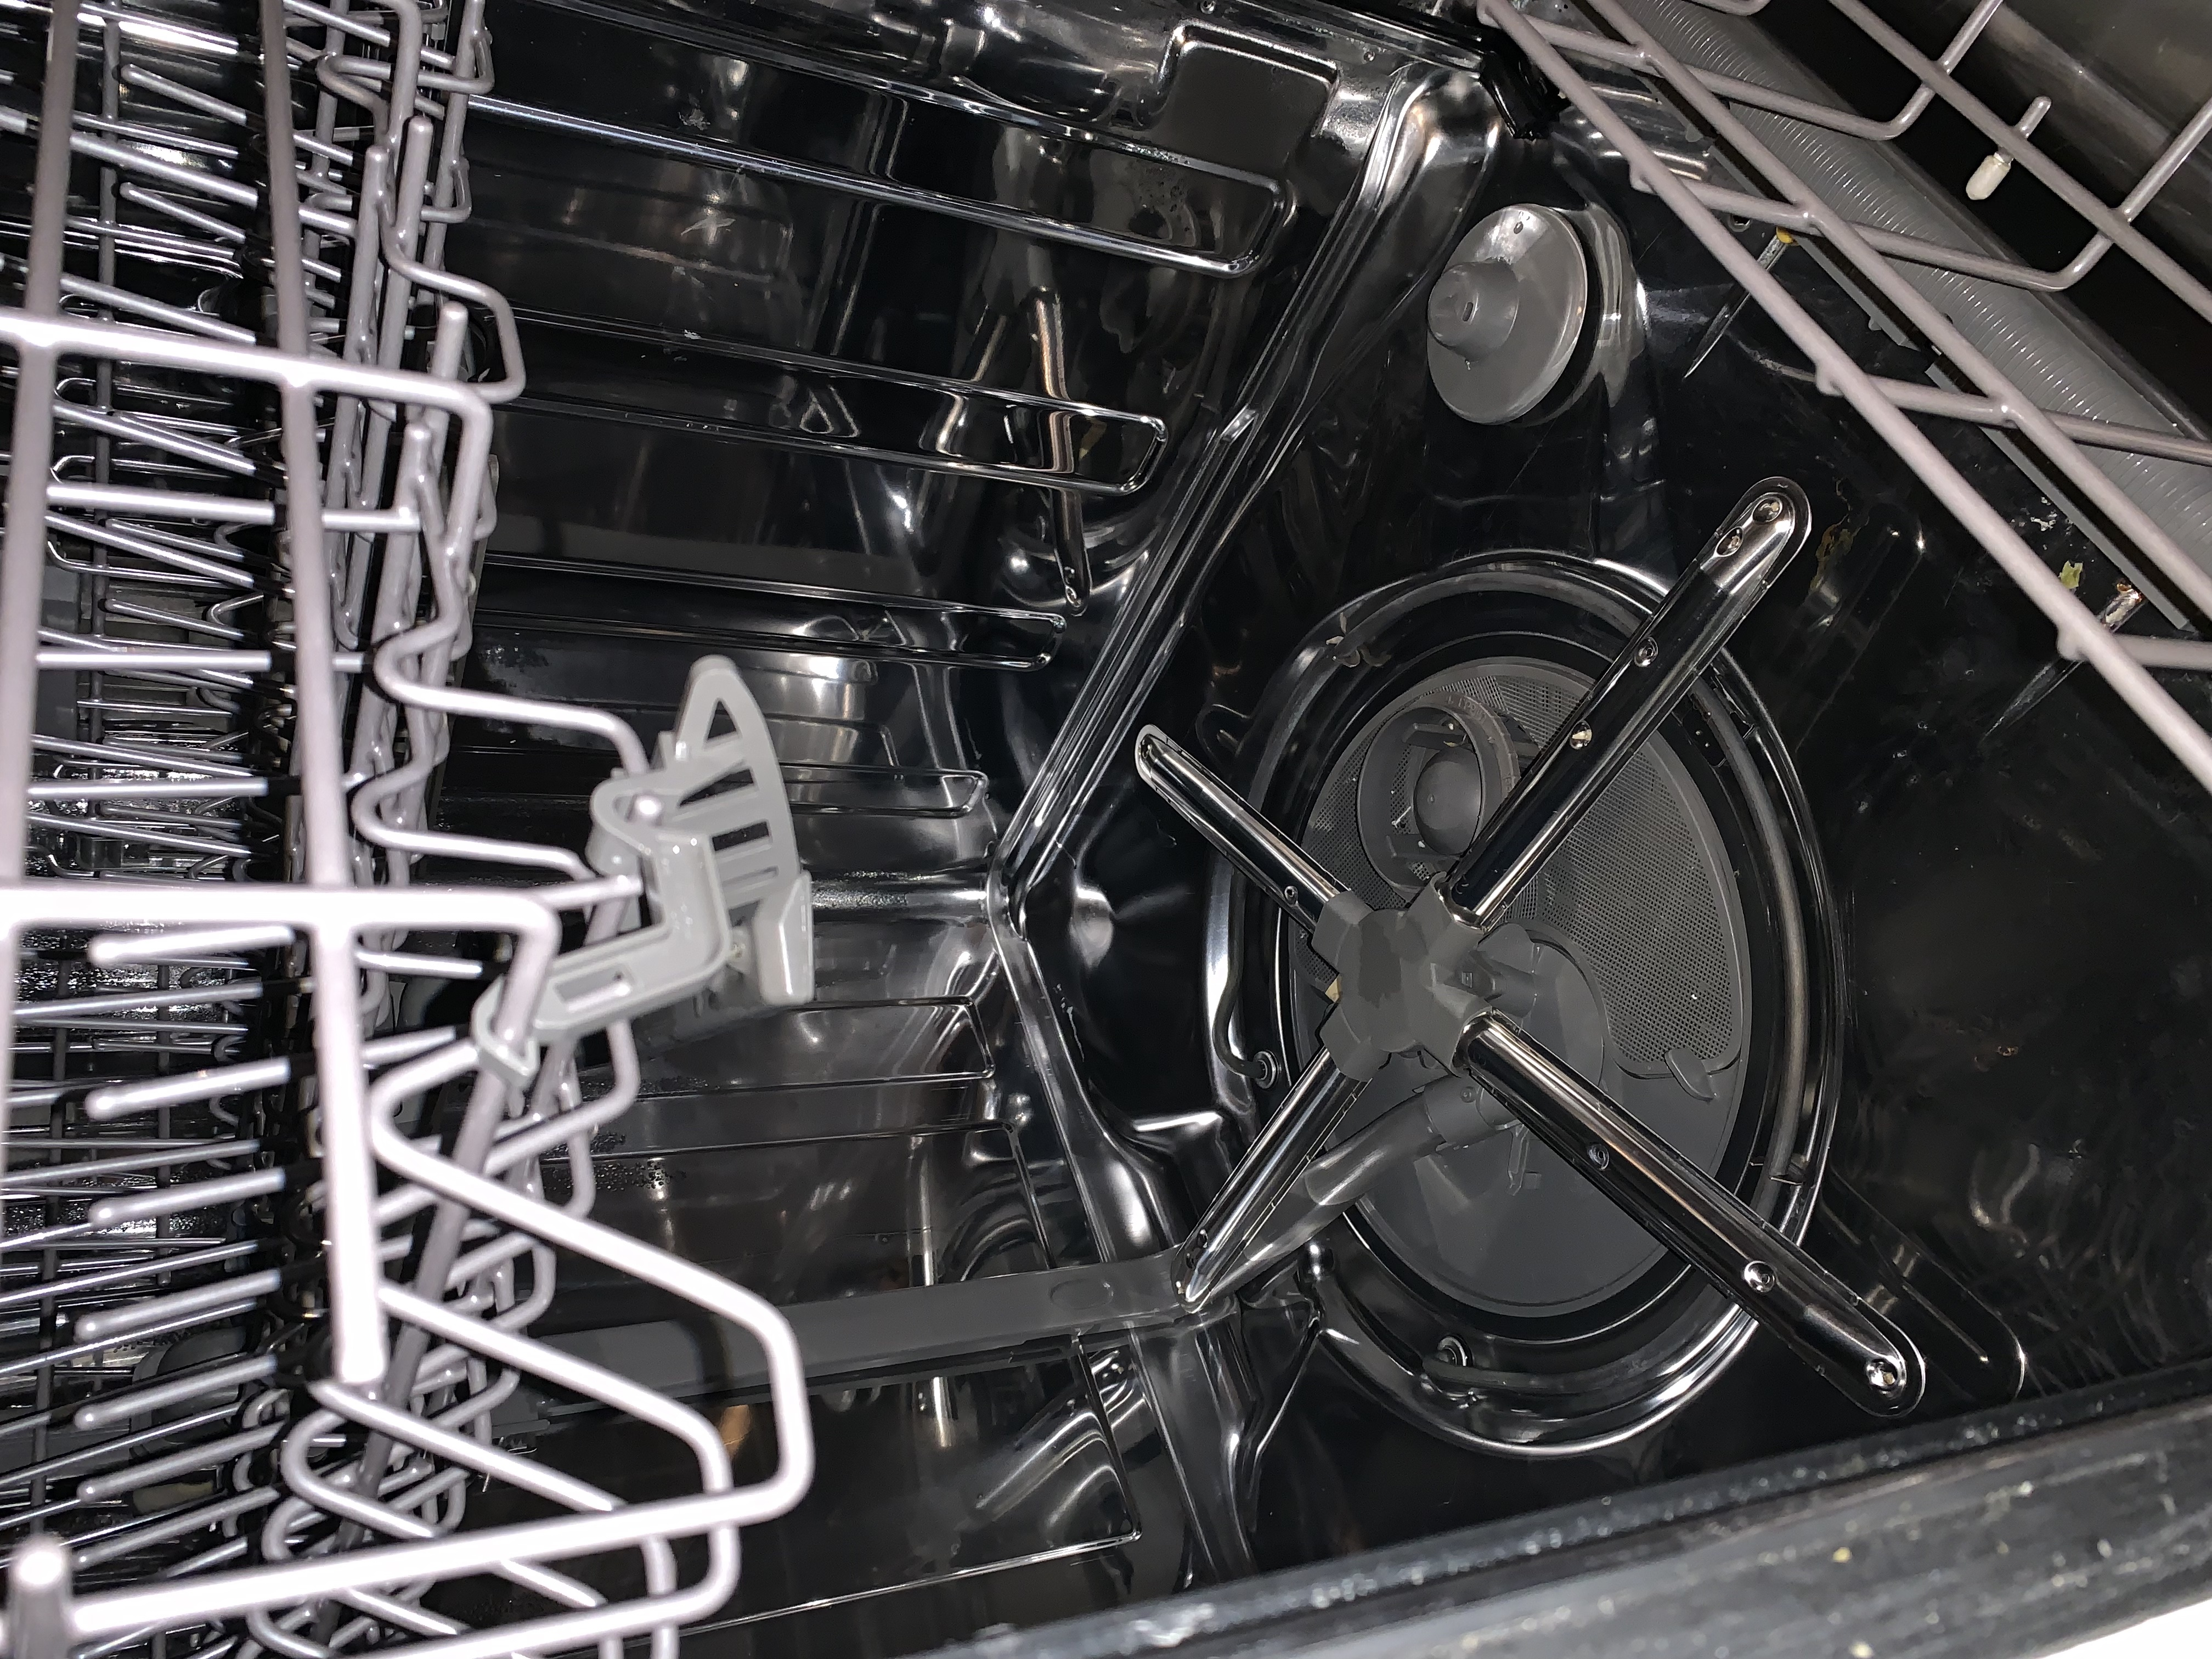 Appliance Inspection for Home Inspectors